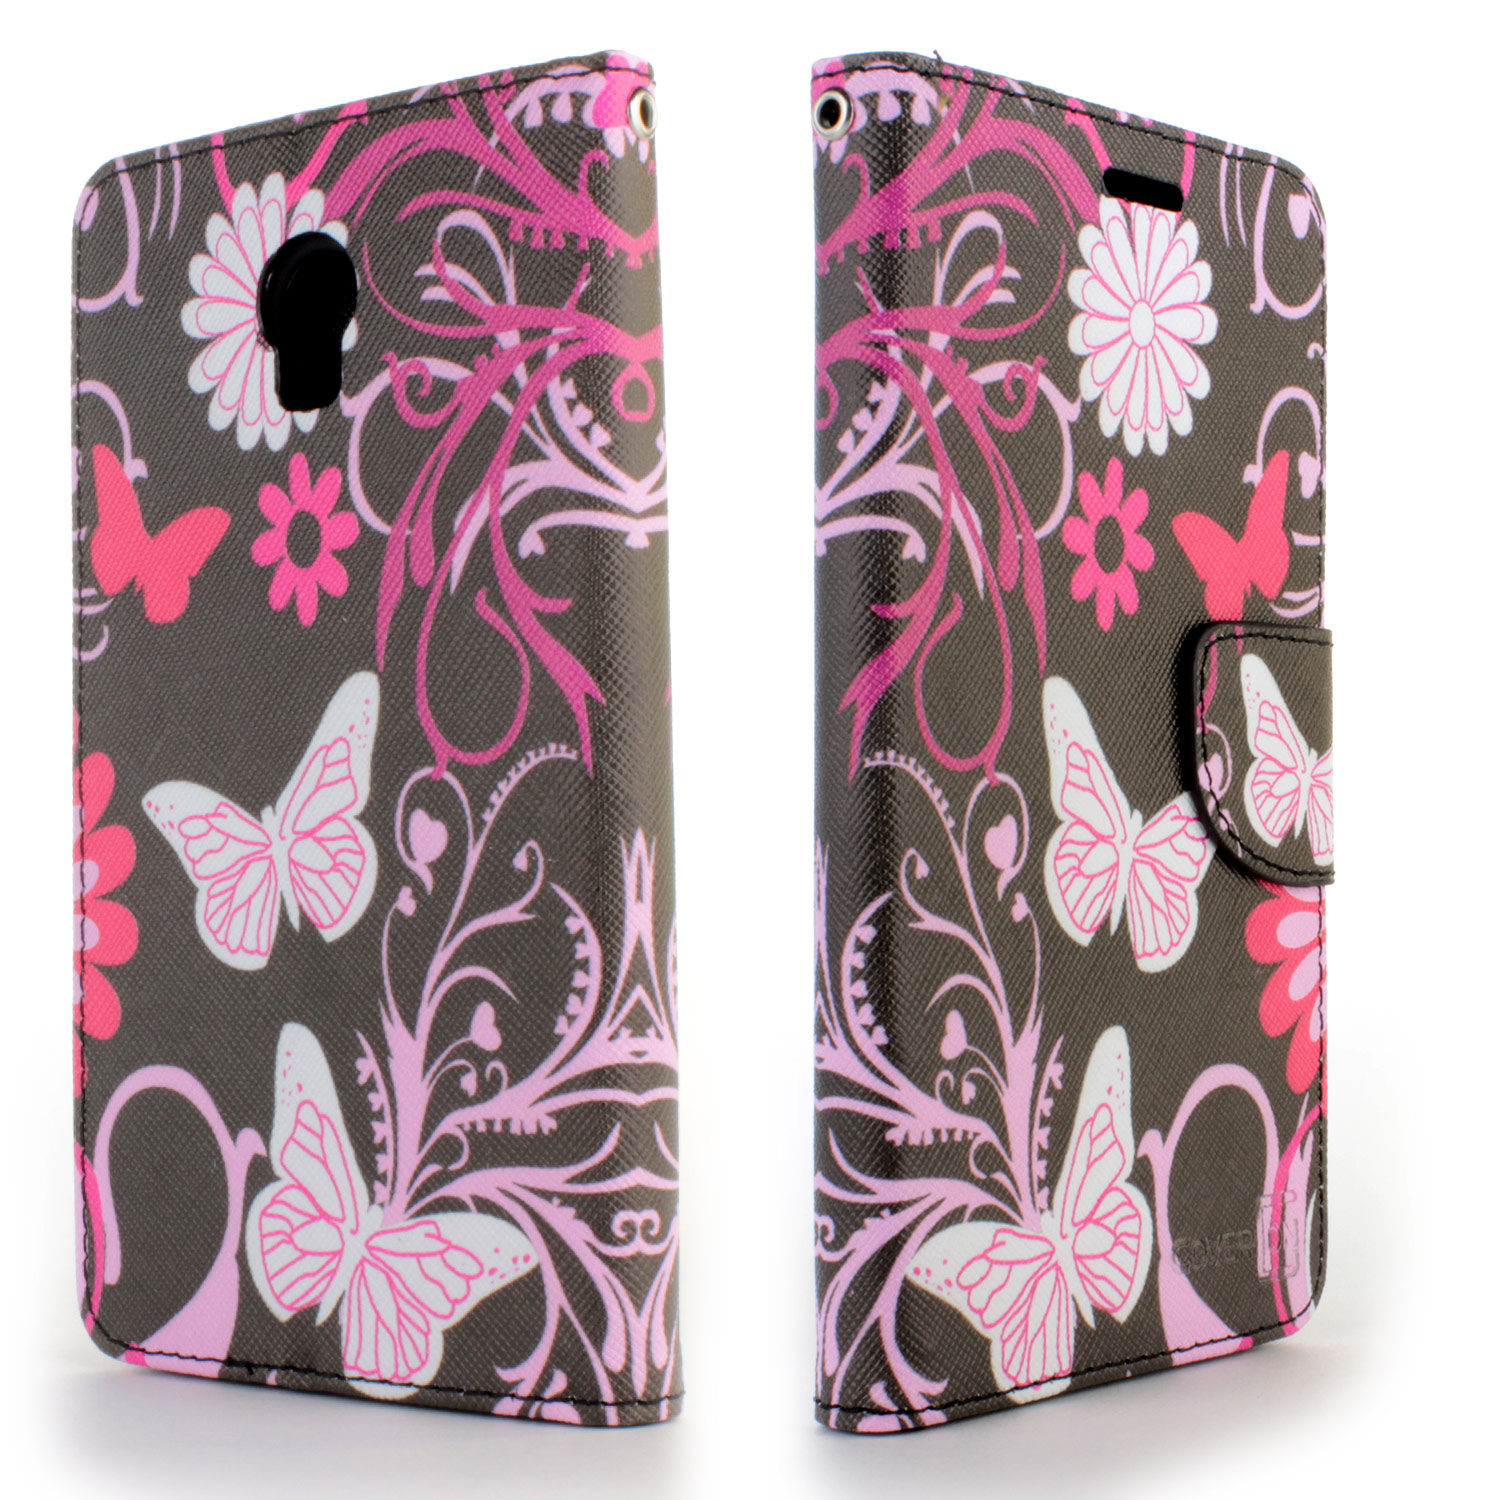 For Lenovo Vibe P1 Wallet Case Pink Butterfly Design Folio Phone